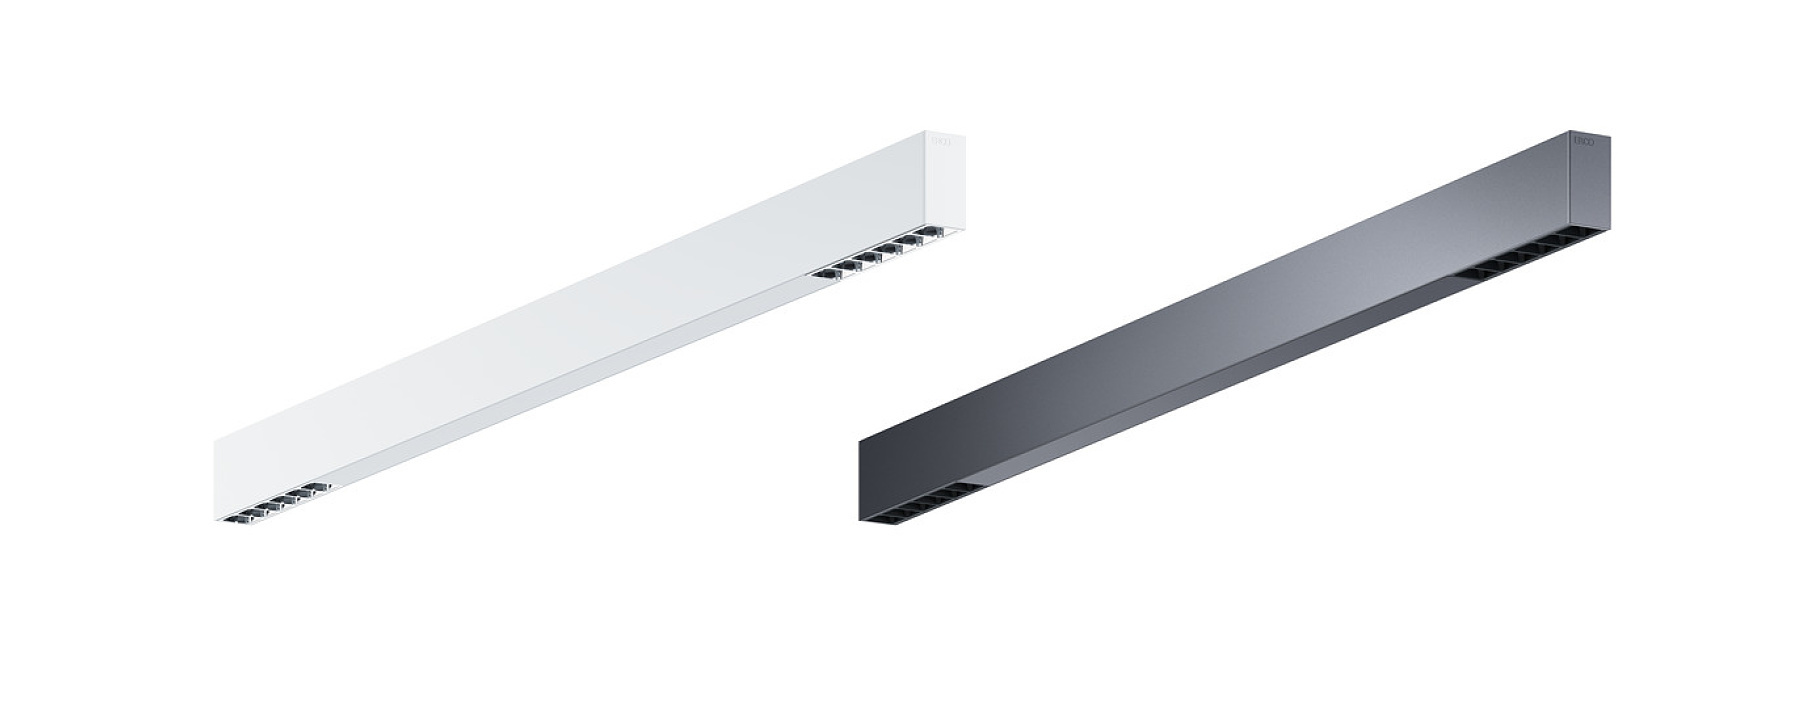 Compar linear - Surface-mounted luminaires